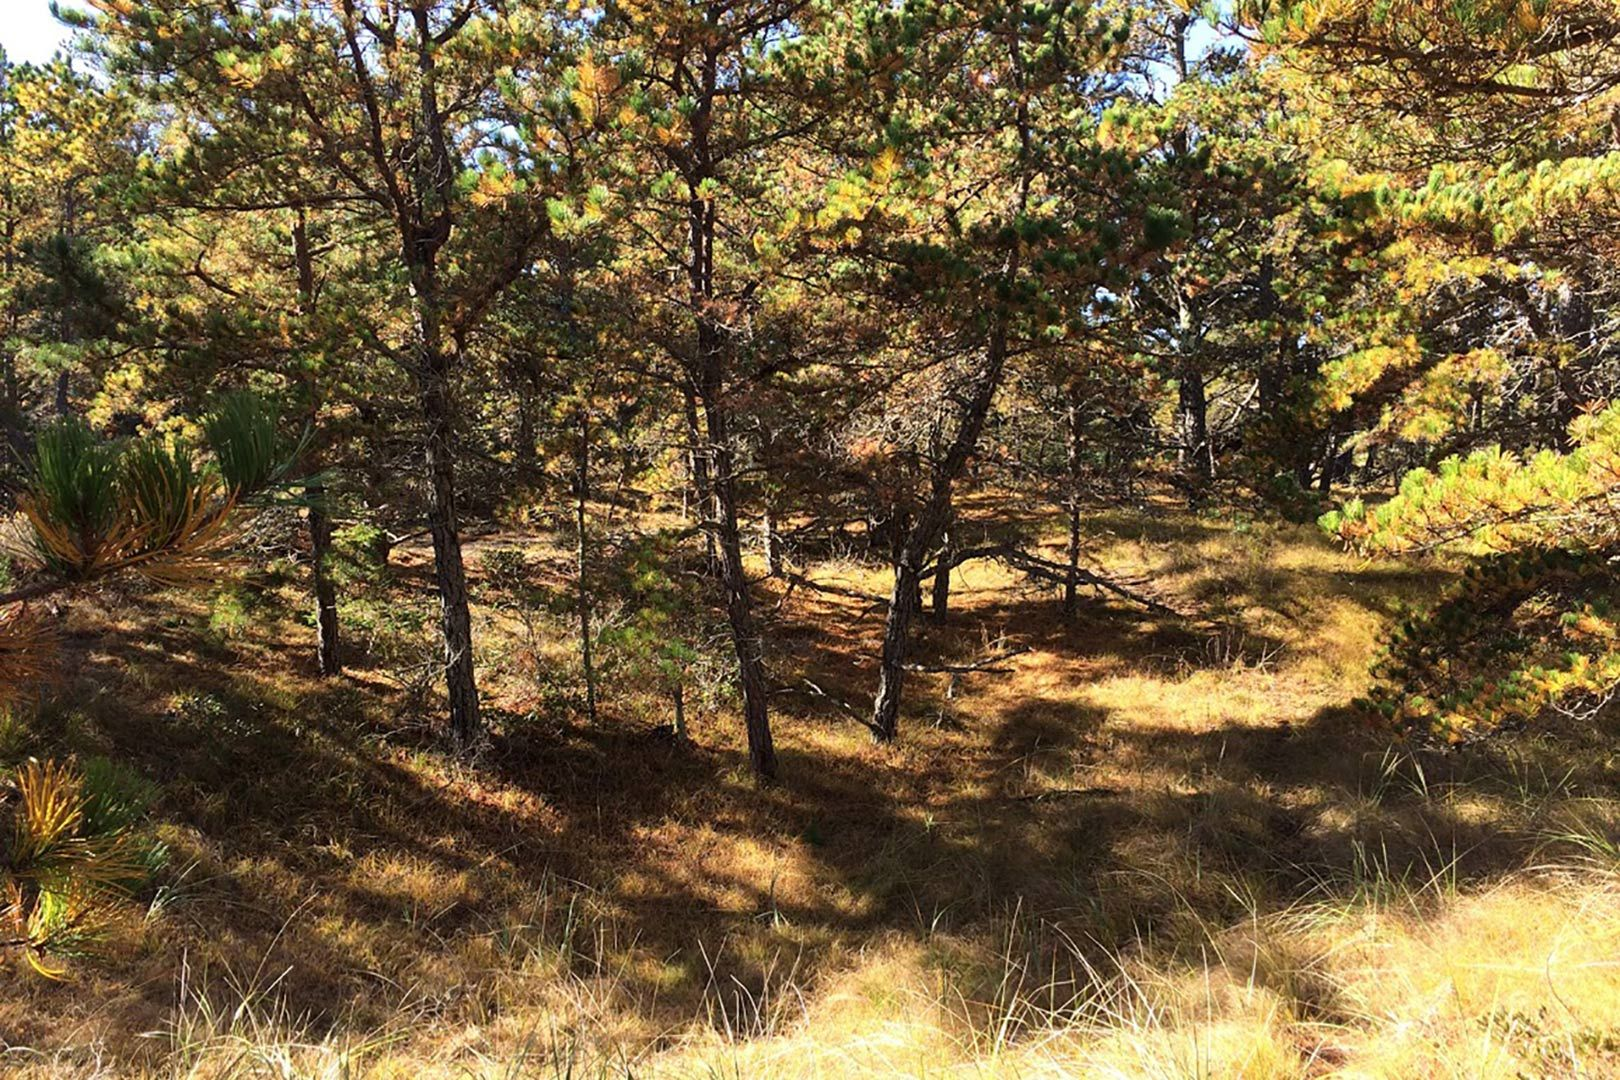 This pitch pine dune woodland at Bates—Morse Mountain is a globally rare ecosystem and possesses a rare beauty, as well. (Laura Sewall/Bates College)